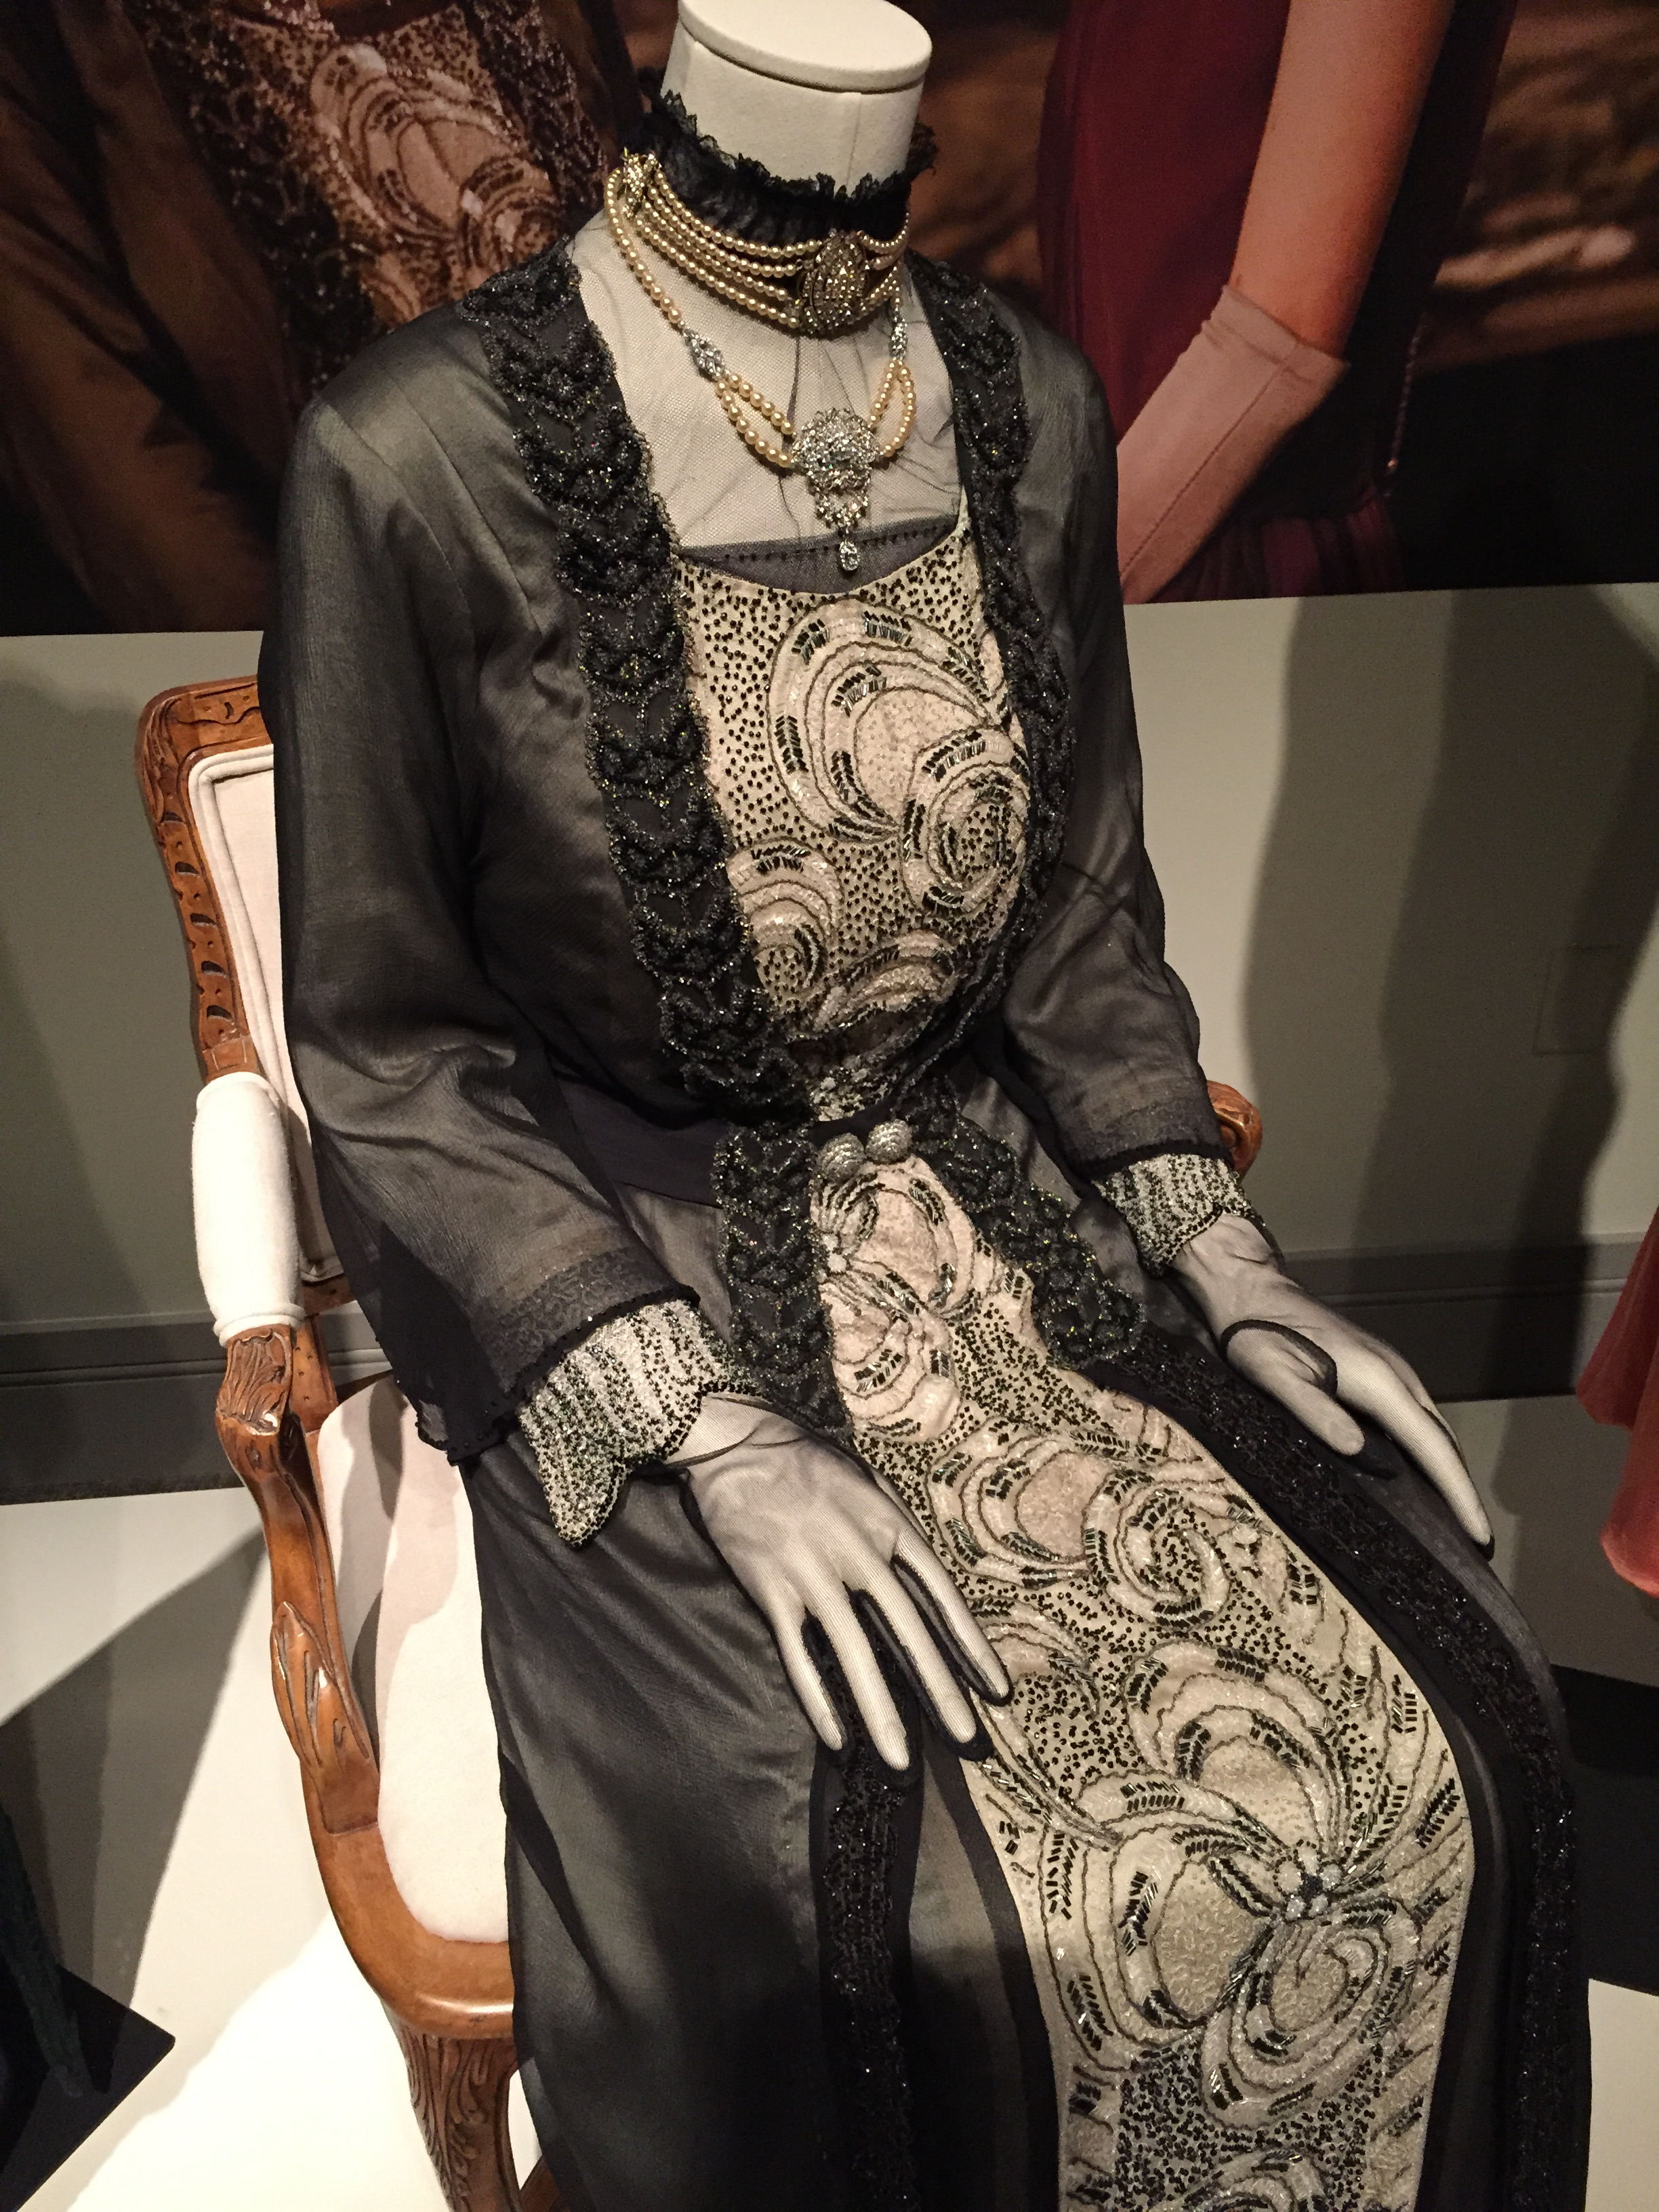 Formal evening dress worn by Dame Maggie Smith as the Dowager Countess of Grantham